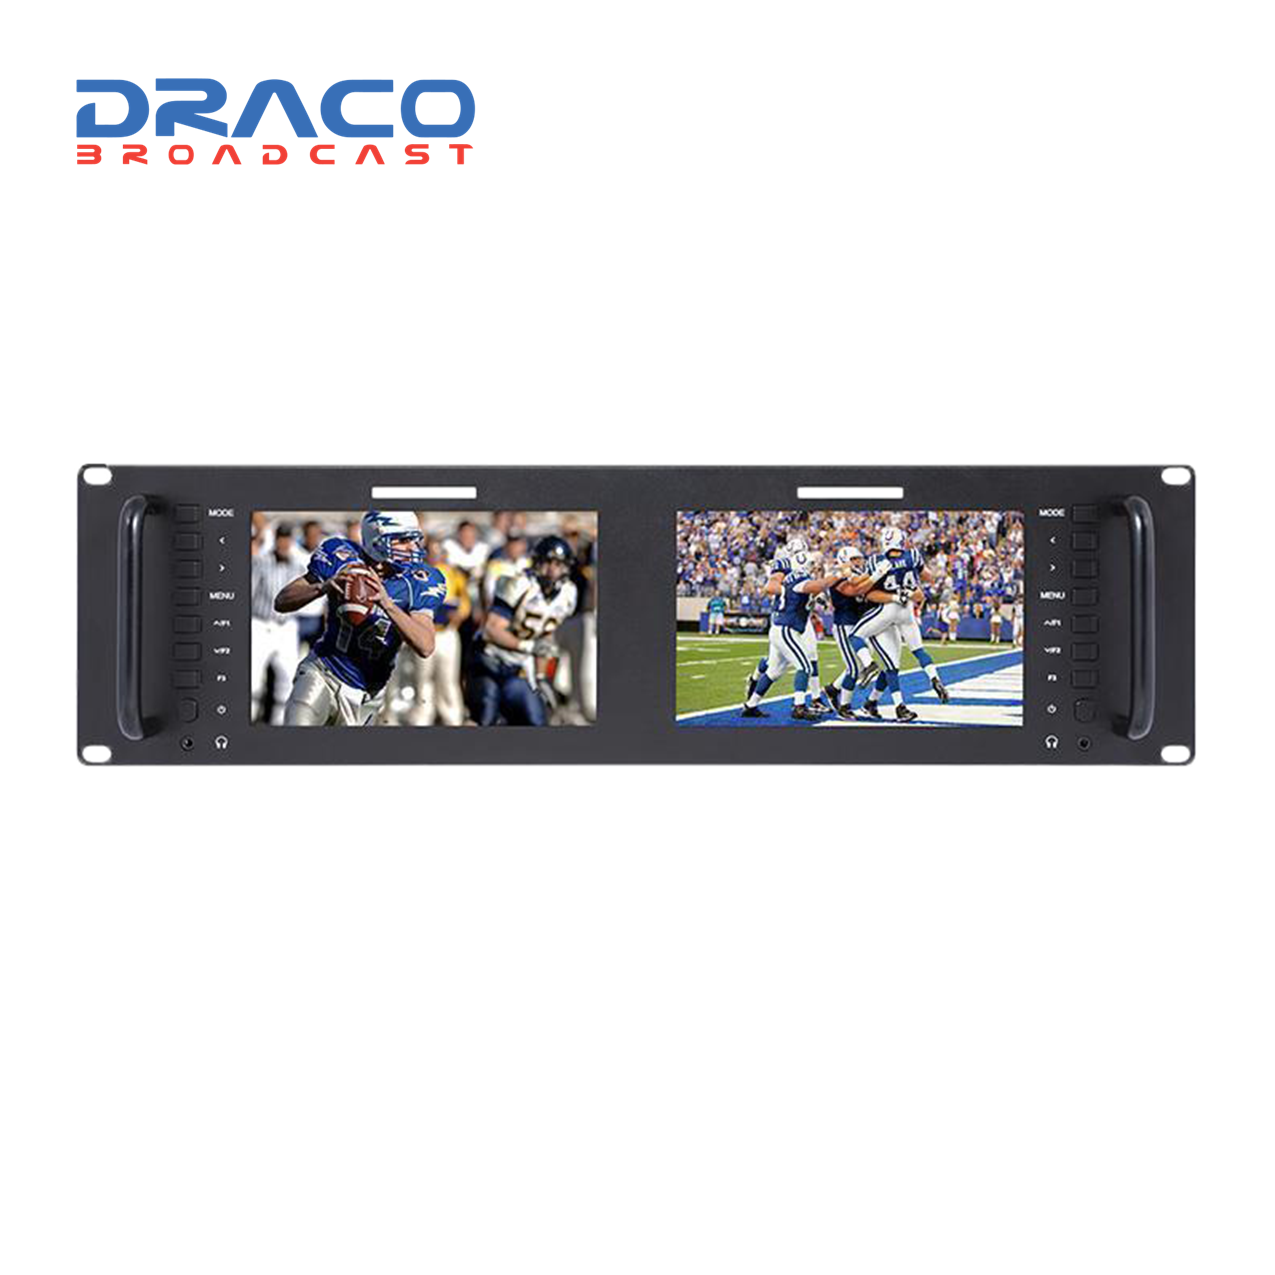 Laizeske Dual 7″ IPS 1280 x 800 LCD Rackmount Monitor with 3G-SDI & HDMI (3 RU) Monitors Draco Broadcast